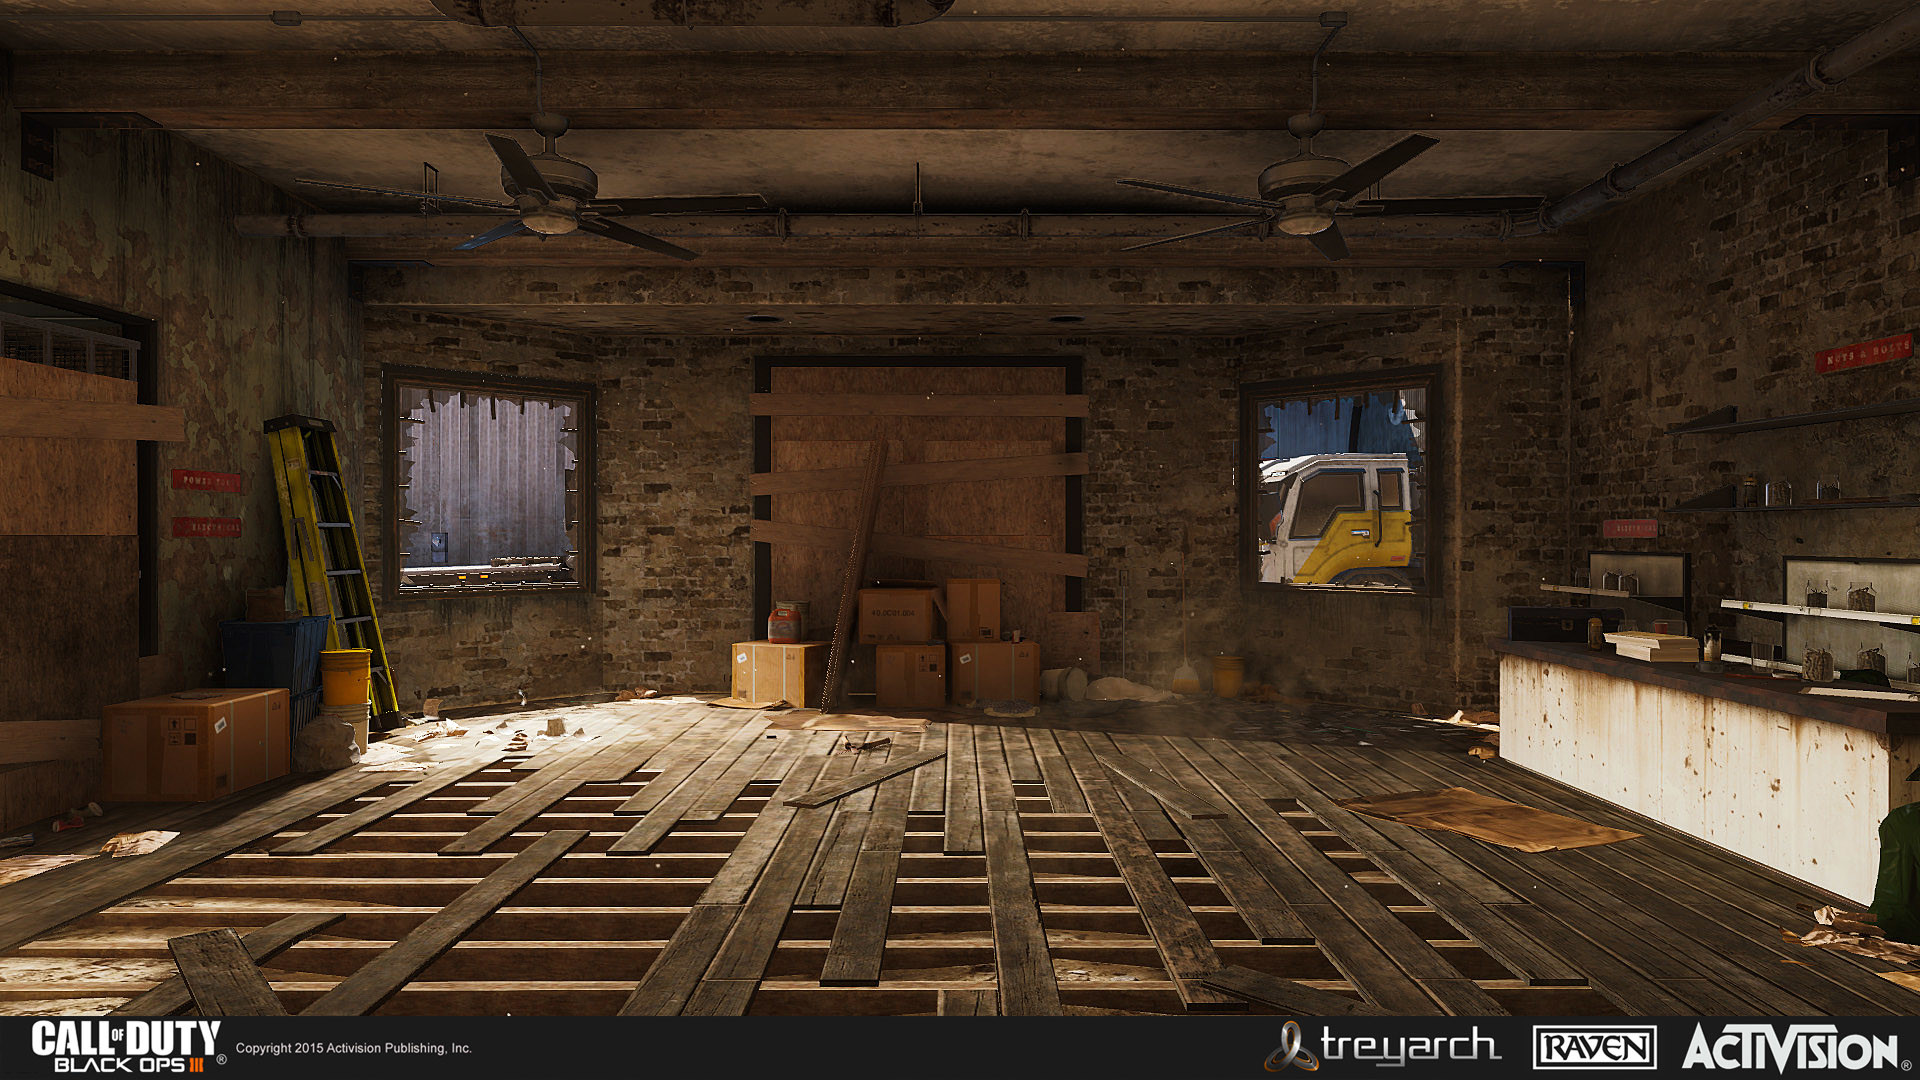 ArtStation - Call of Duty: Black Ops 3 Multiplayer Map ... on gears of war 1 maps, cod black ops zombies maps, black ops 1 zombie maps, call duty black ops 3, black ops all maps, black ops 2 new maps, call duty black ops zombies, call of duty jungle, black ops 1 dlc maps, call duty black ops 2 maps, call of duty ascension, prince of persia 1 maps, call of duty advanced warfare nuclear medal, black ops 1 multiplayer maps,